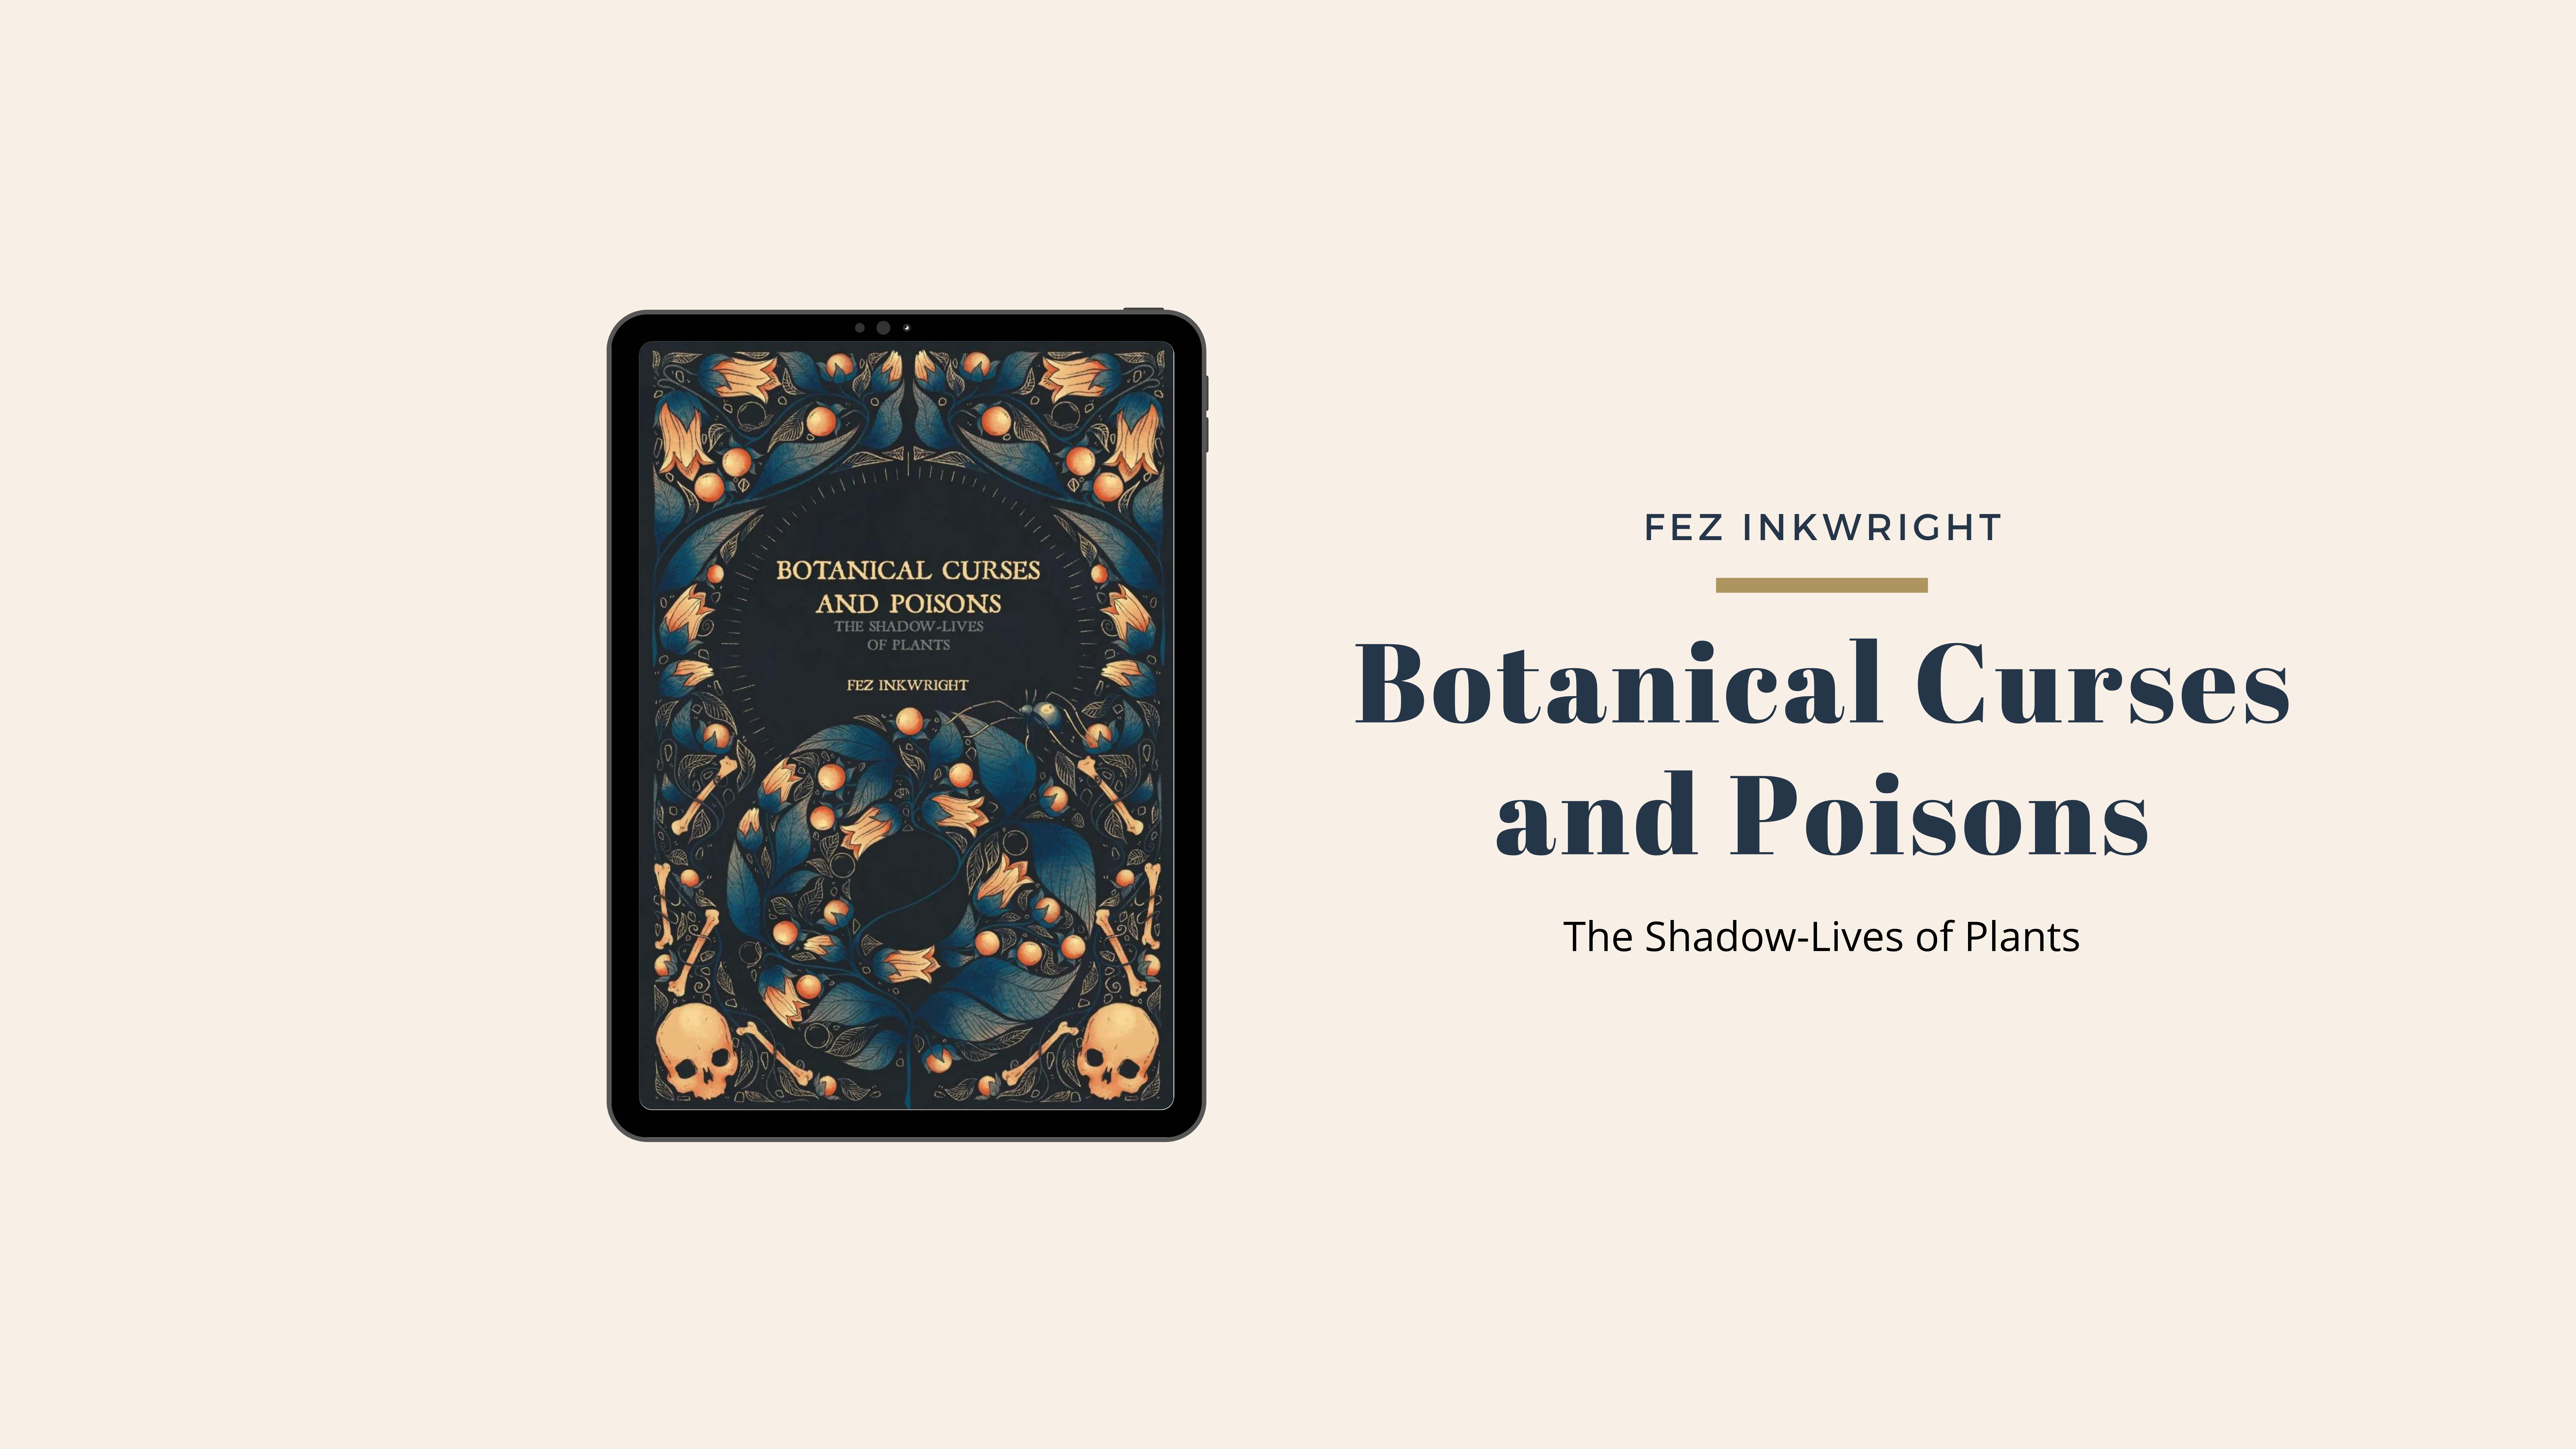 Botanical Curses and Poisons: The Shadow-Lives of Plants